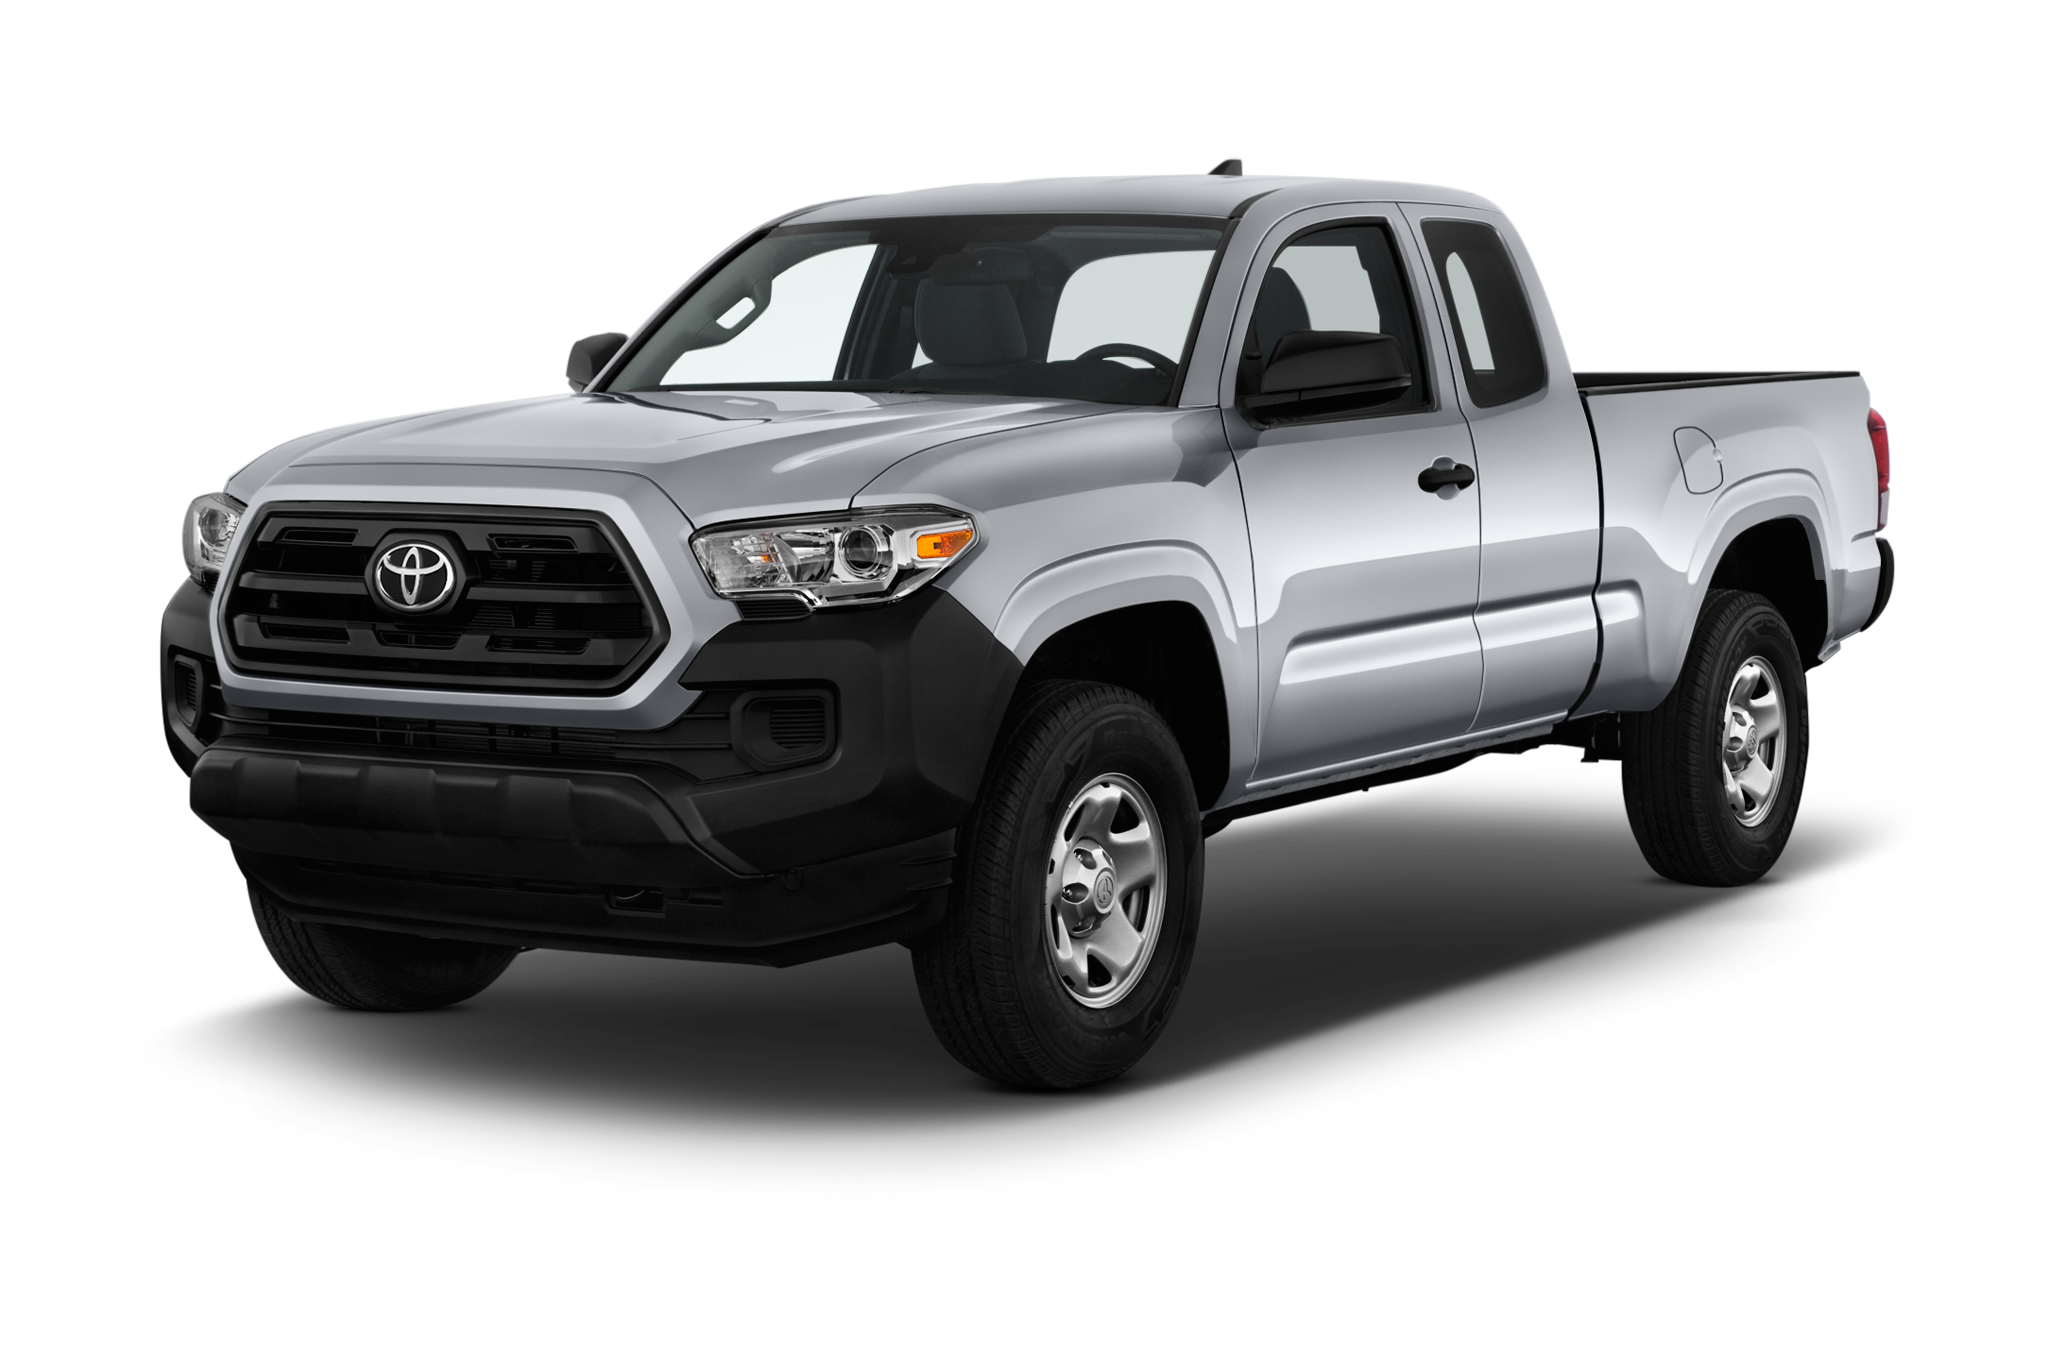 2019 toyota tacoma sr access cab 4x4 v6 auto std bed overview msn autos. Black Bedroom Furniture Sets. Home Design Ideas